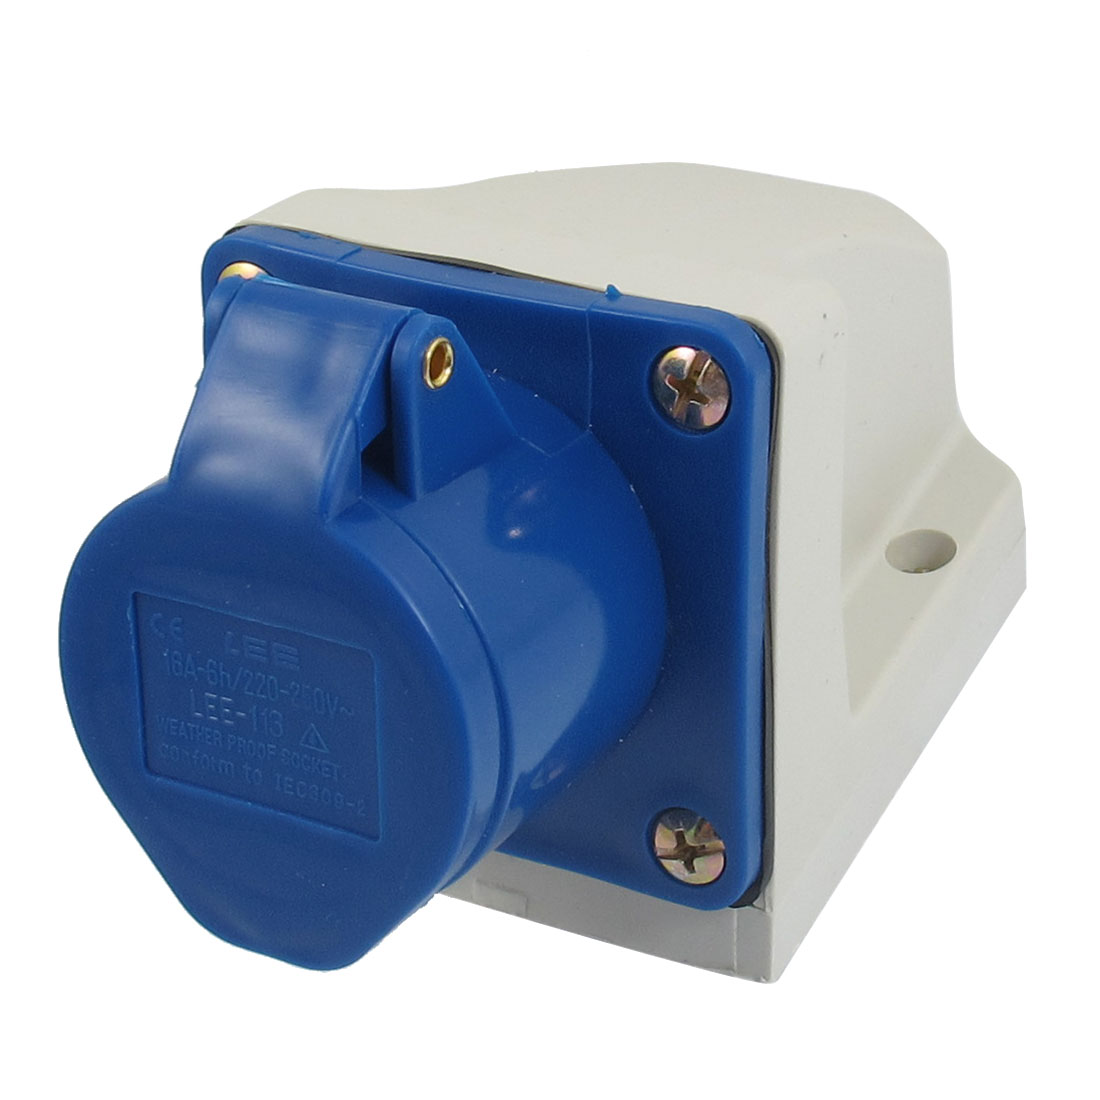 AC 220V-250V 16A 2P+E IEC309-2 Panel Mount Industrial Socket